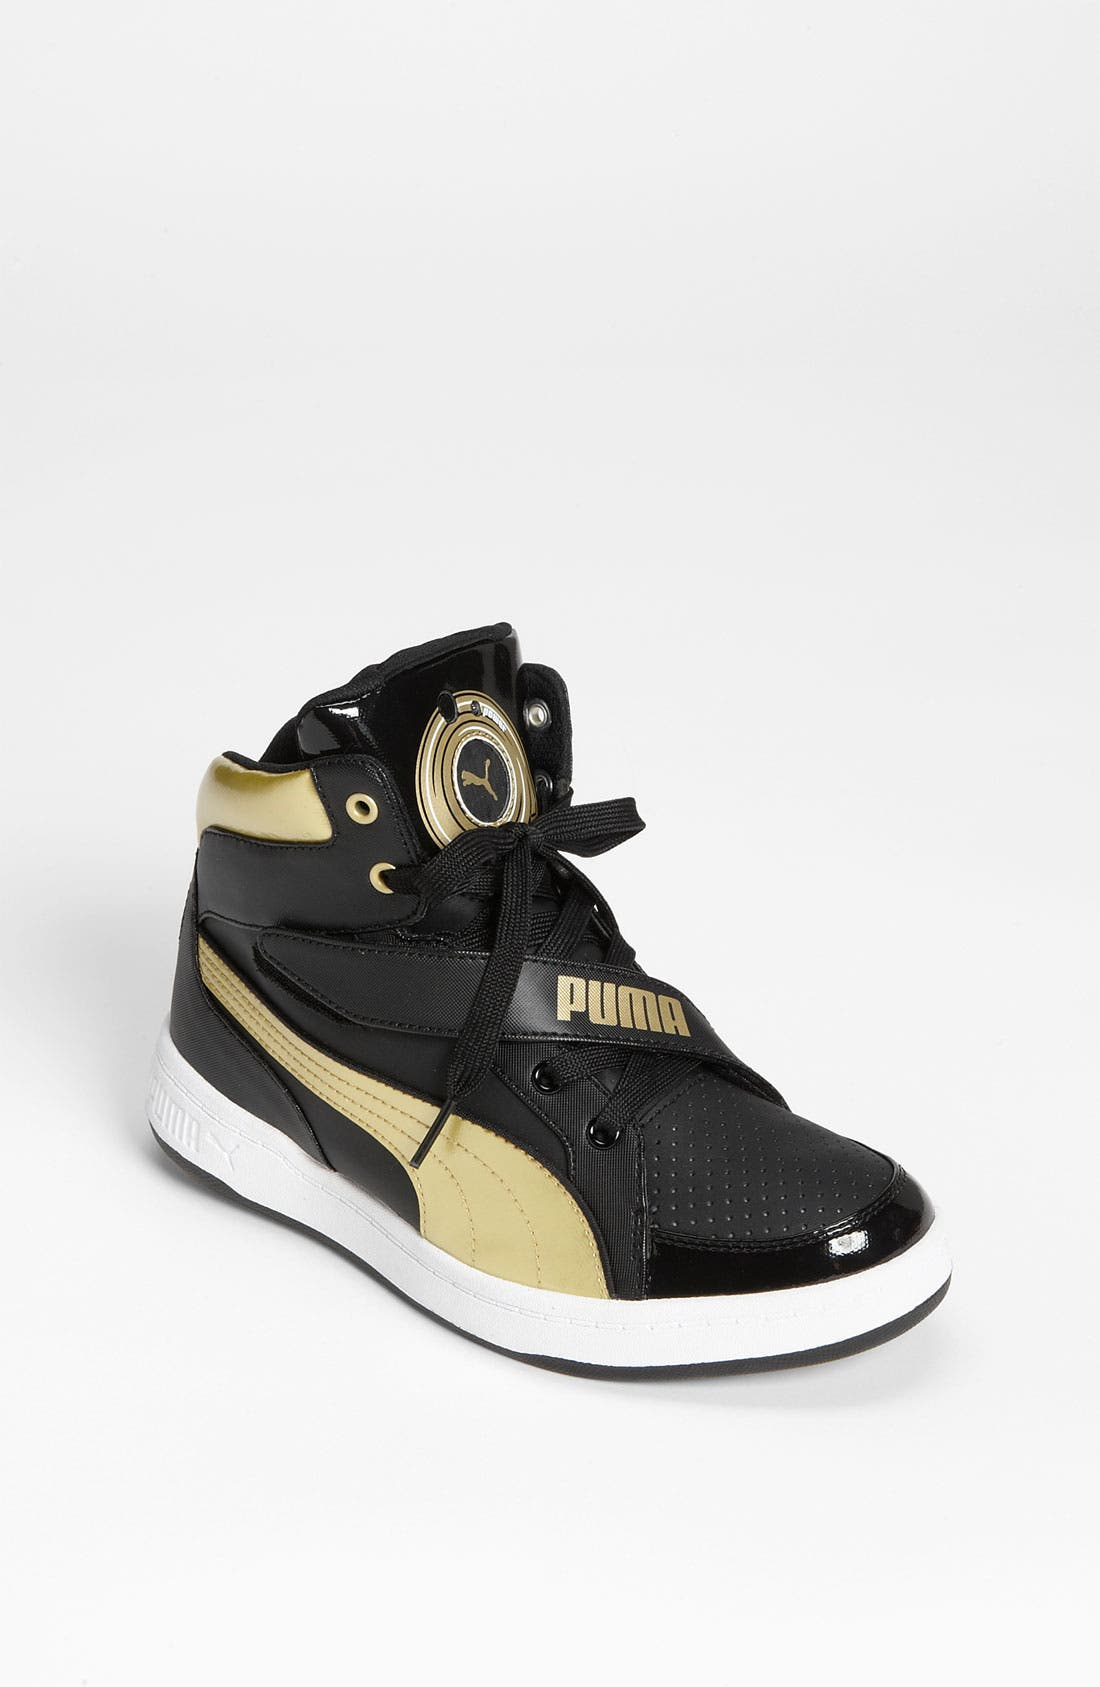 Main Image - PUMA 'DJ 6S Jr.' Sneaker (Toddler, Little Kid & Big Kid)